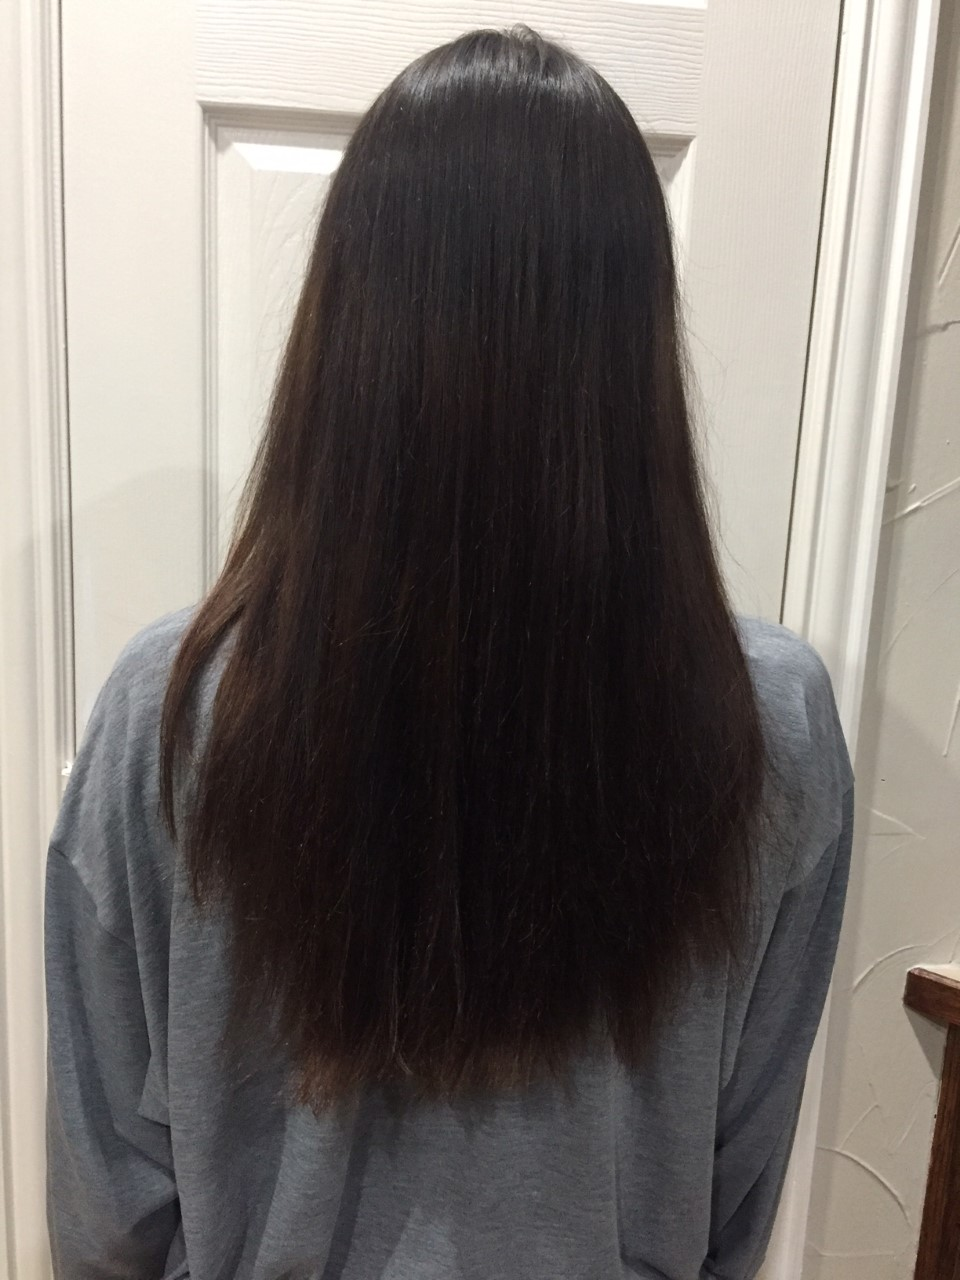 Jan 30, 2018 - After my first hair trim.I decided to take a couple of inches off my length to achieve a healthier look.I will continue to document my hair transformation each month.